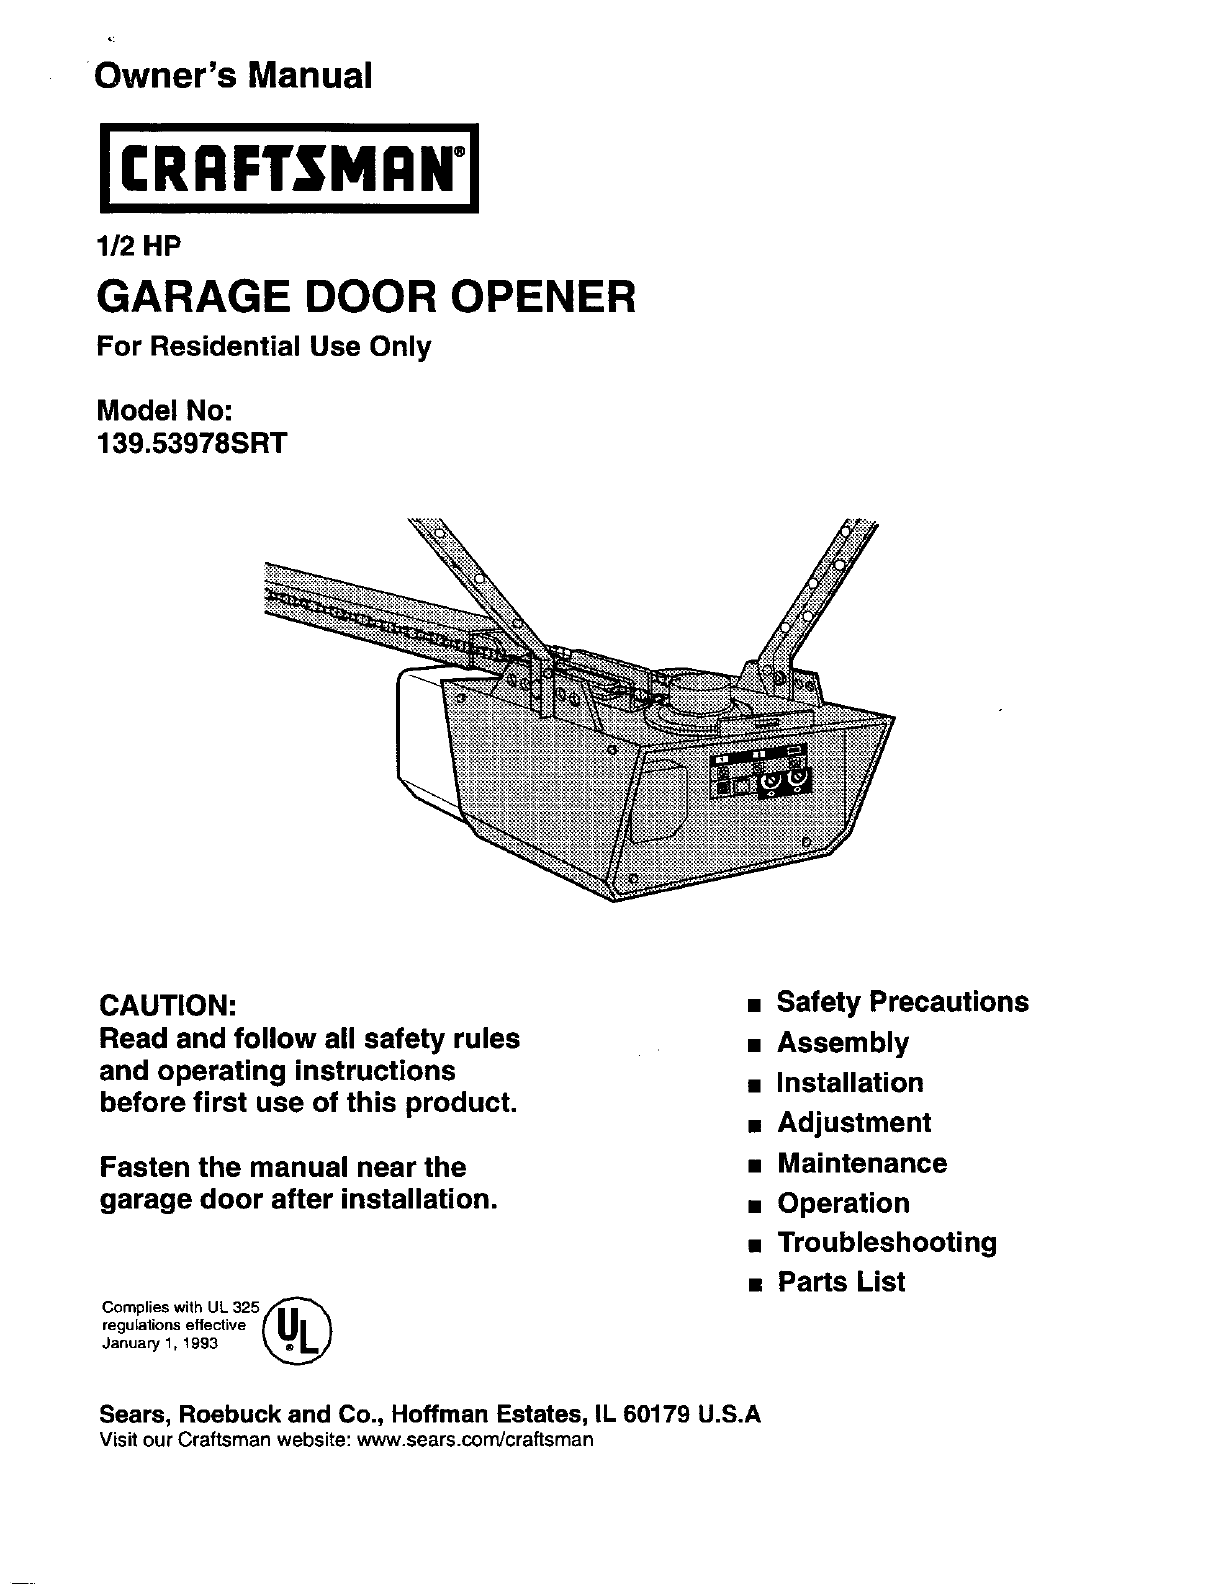 whisper chamberlain wiring parts door garage drive image lift master opener diagram craftsman